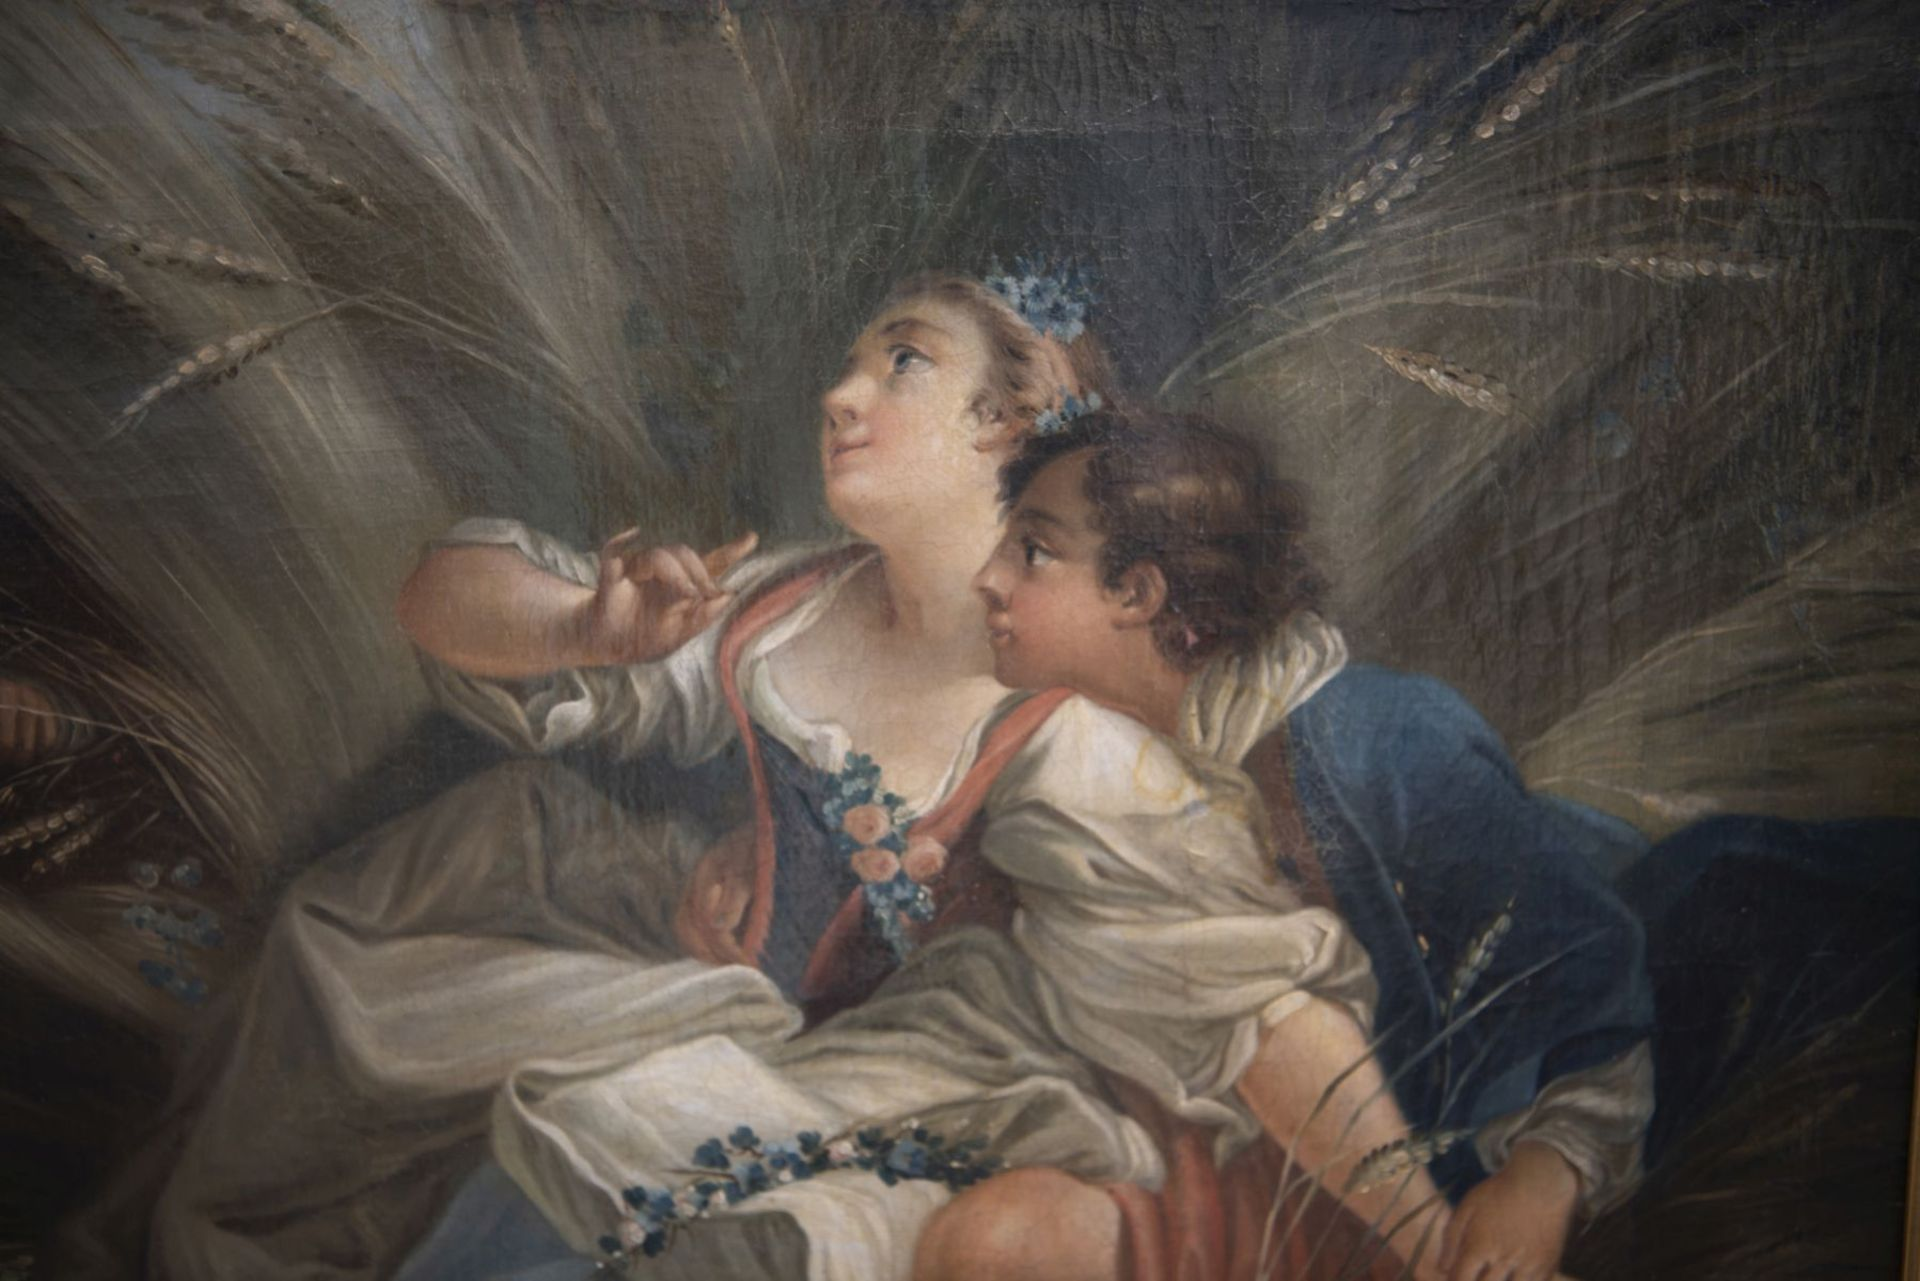 """France 18th century """"Caught lovers"""" - Image 6 of 7"""